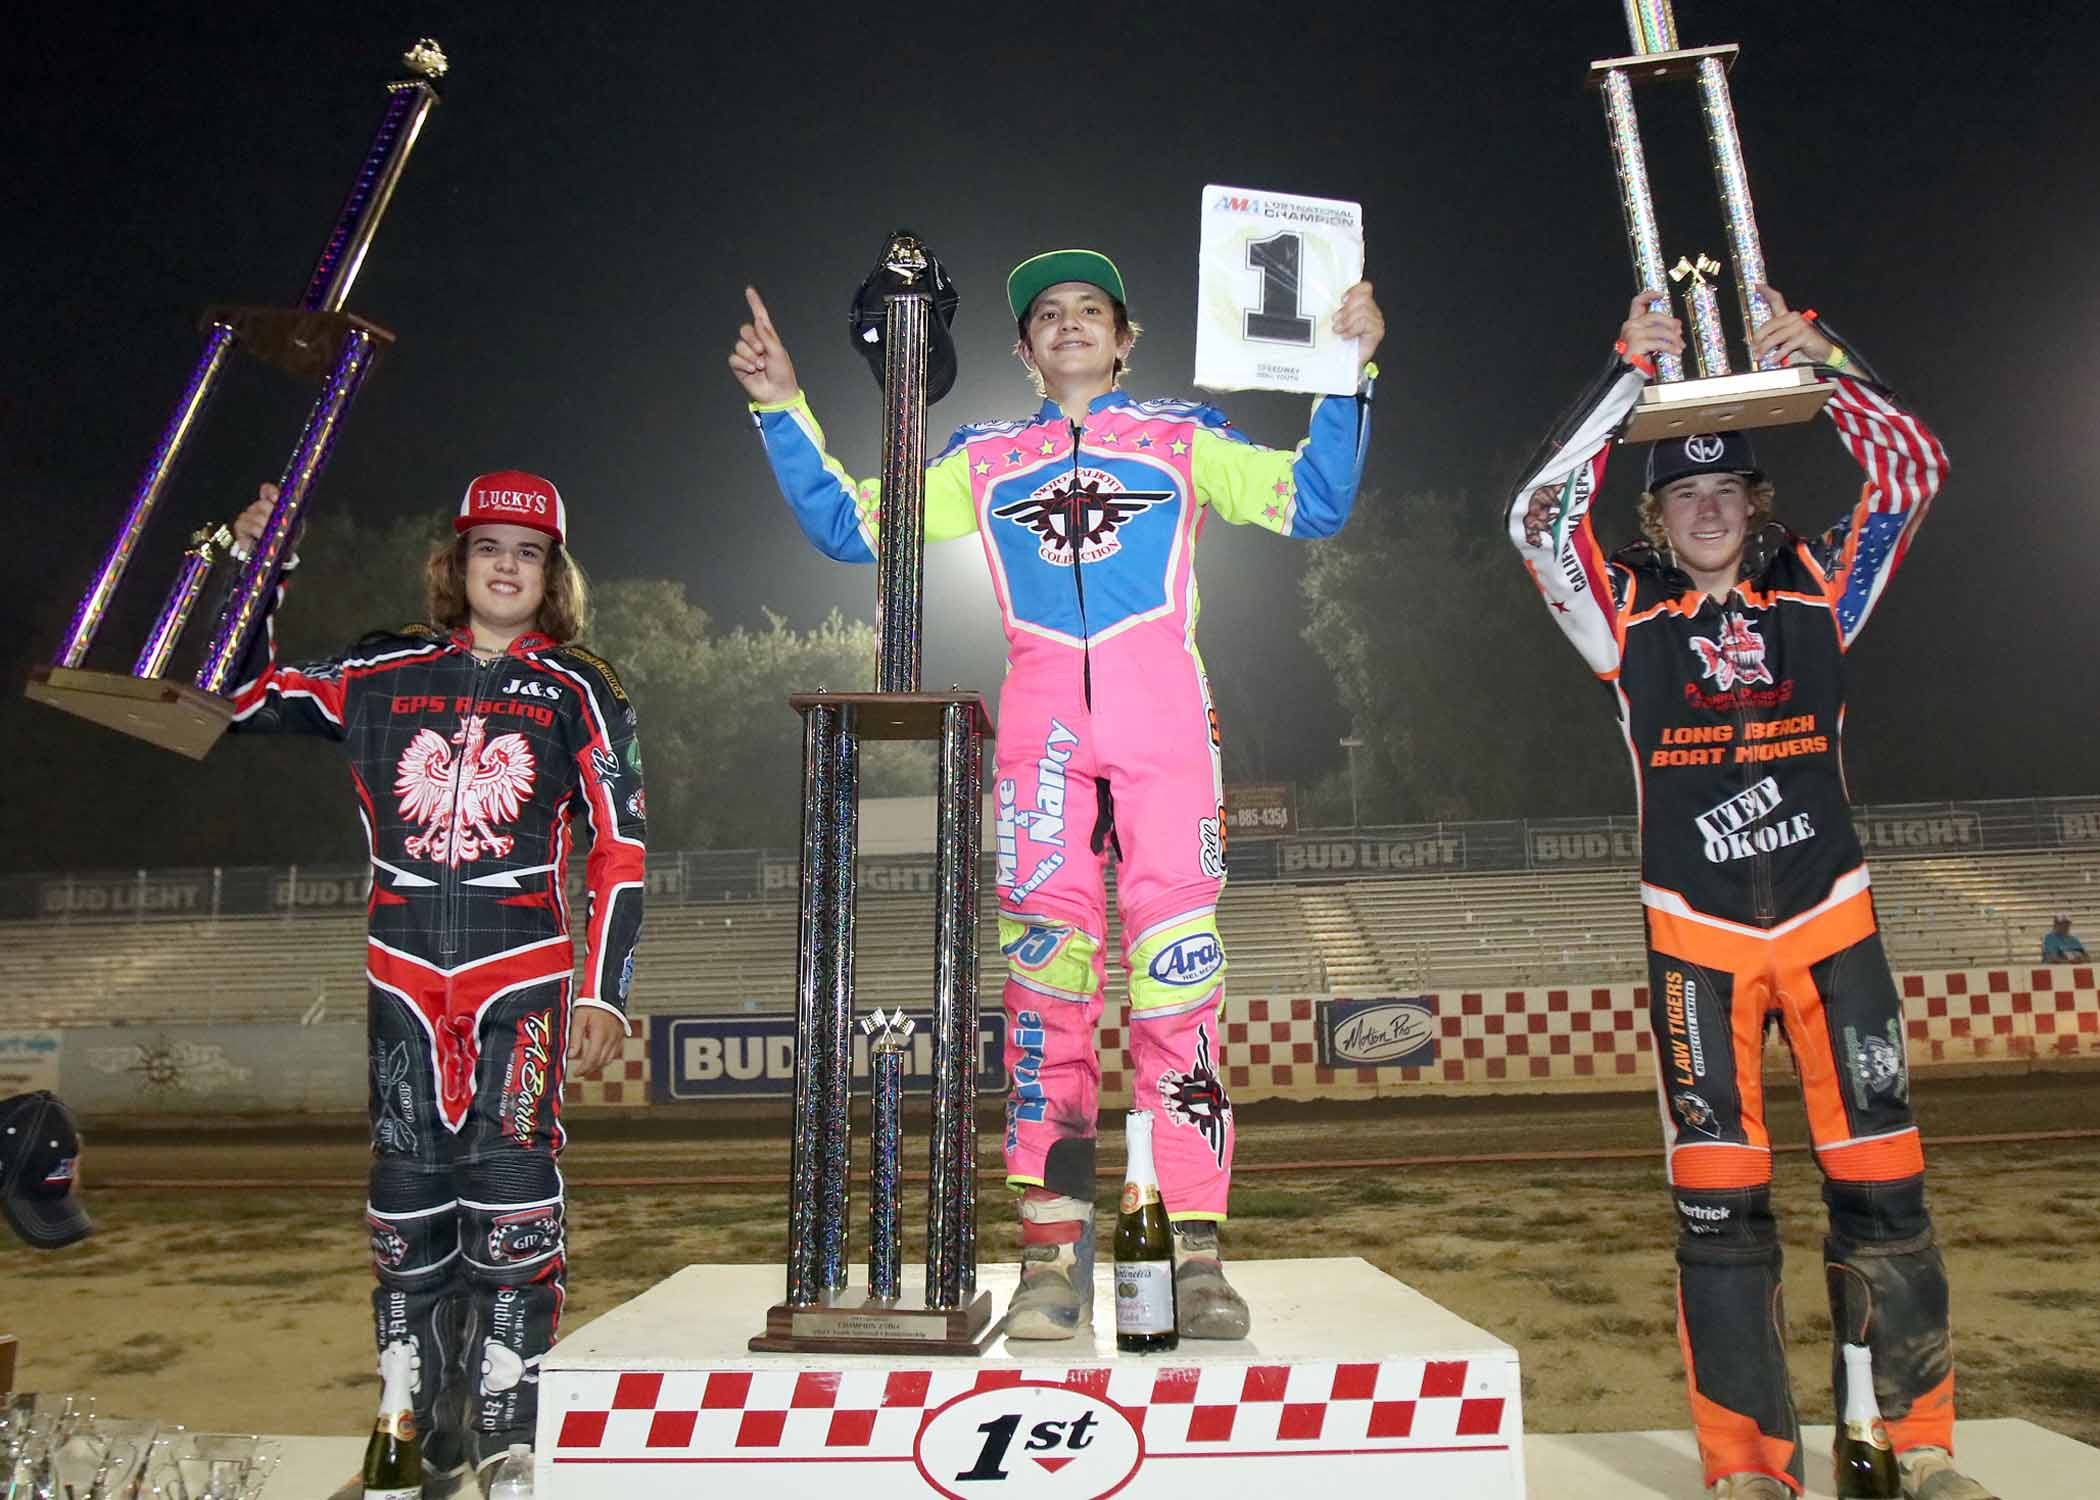 2021 AMA 250cc Youth Speedway National Championship podium at Fast Fridays Motorcycle Speedway